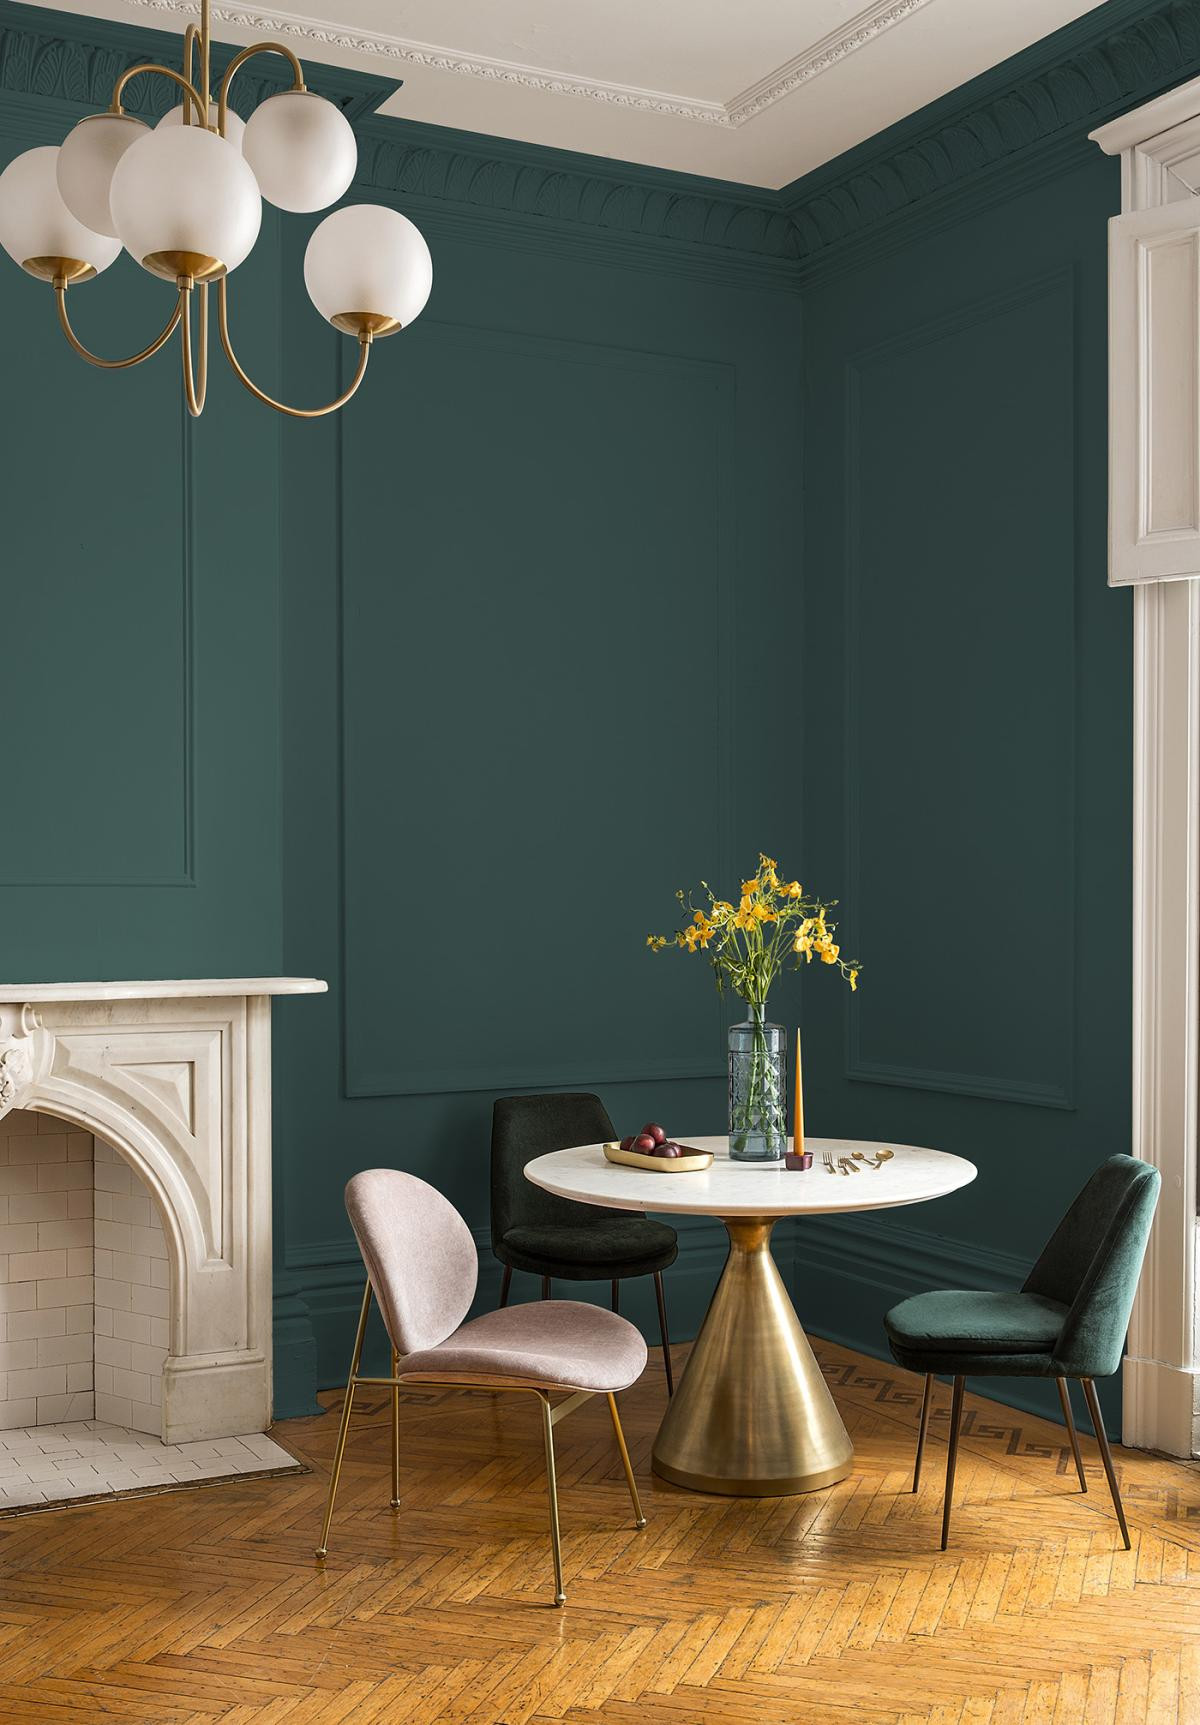 Best ideas about 2019 Paint Colors . Save or Pin Best Interior Paint Colors for 2019 Now.